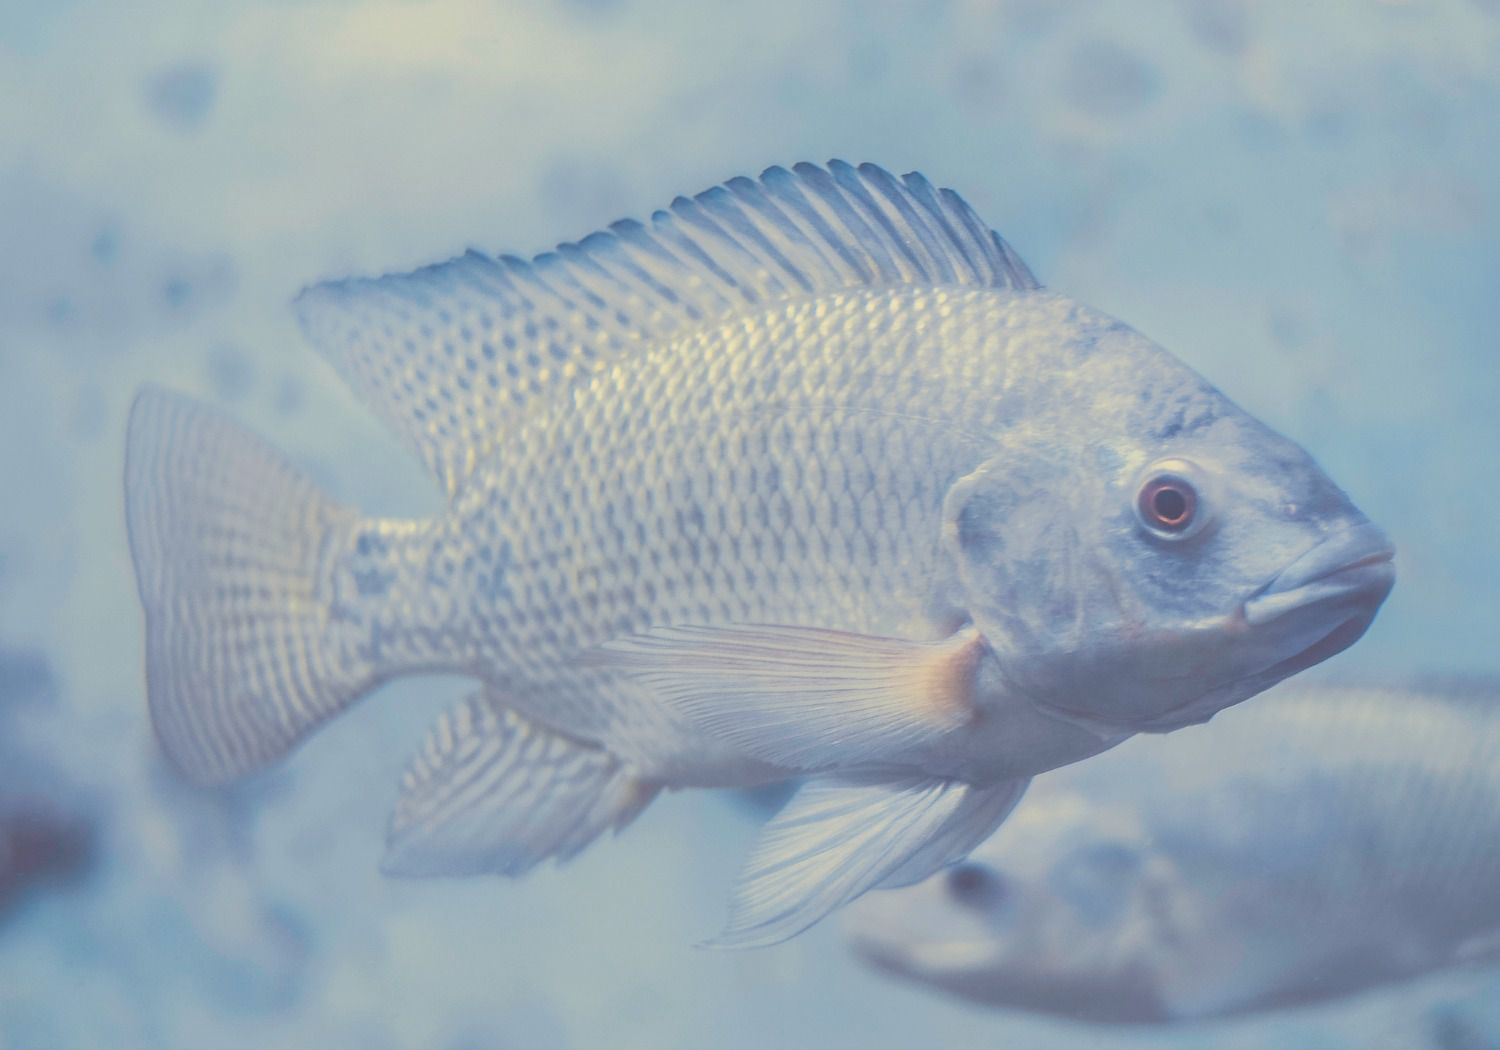 Tilapia swimming through blue water at Marco's Fish Farm, Curaçao.